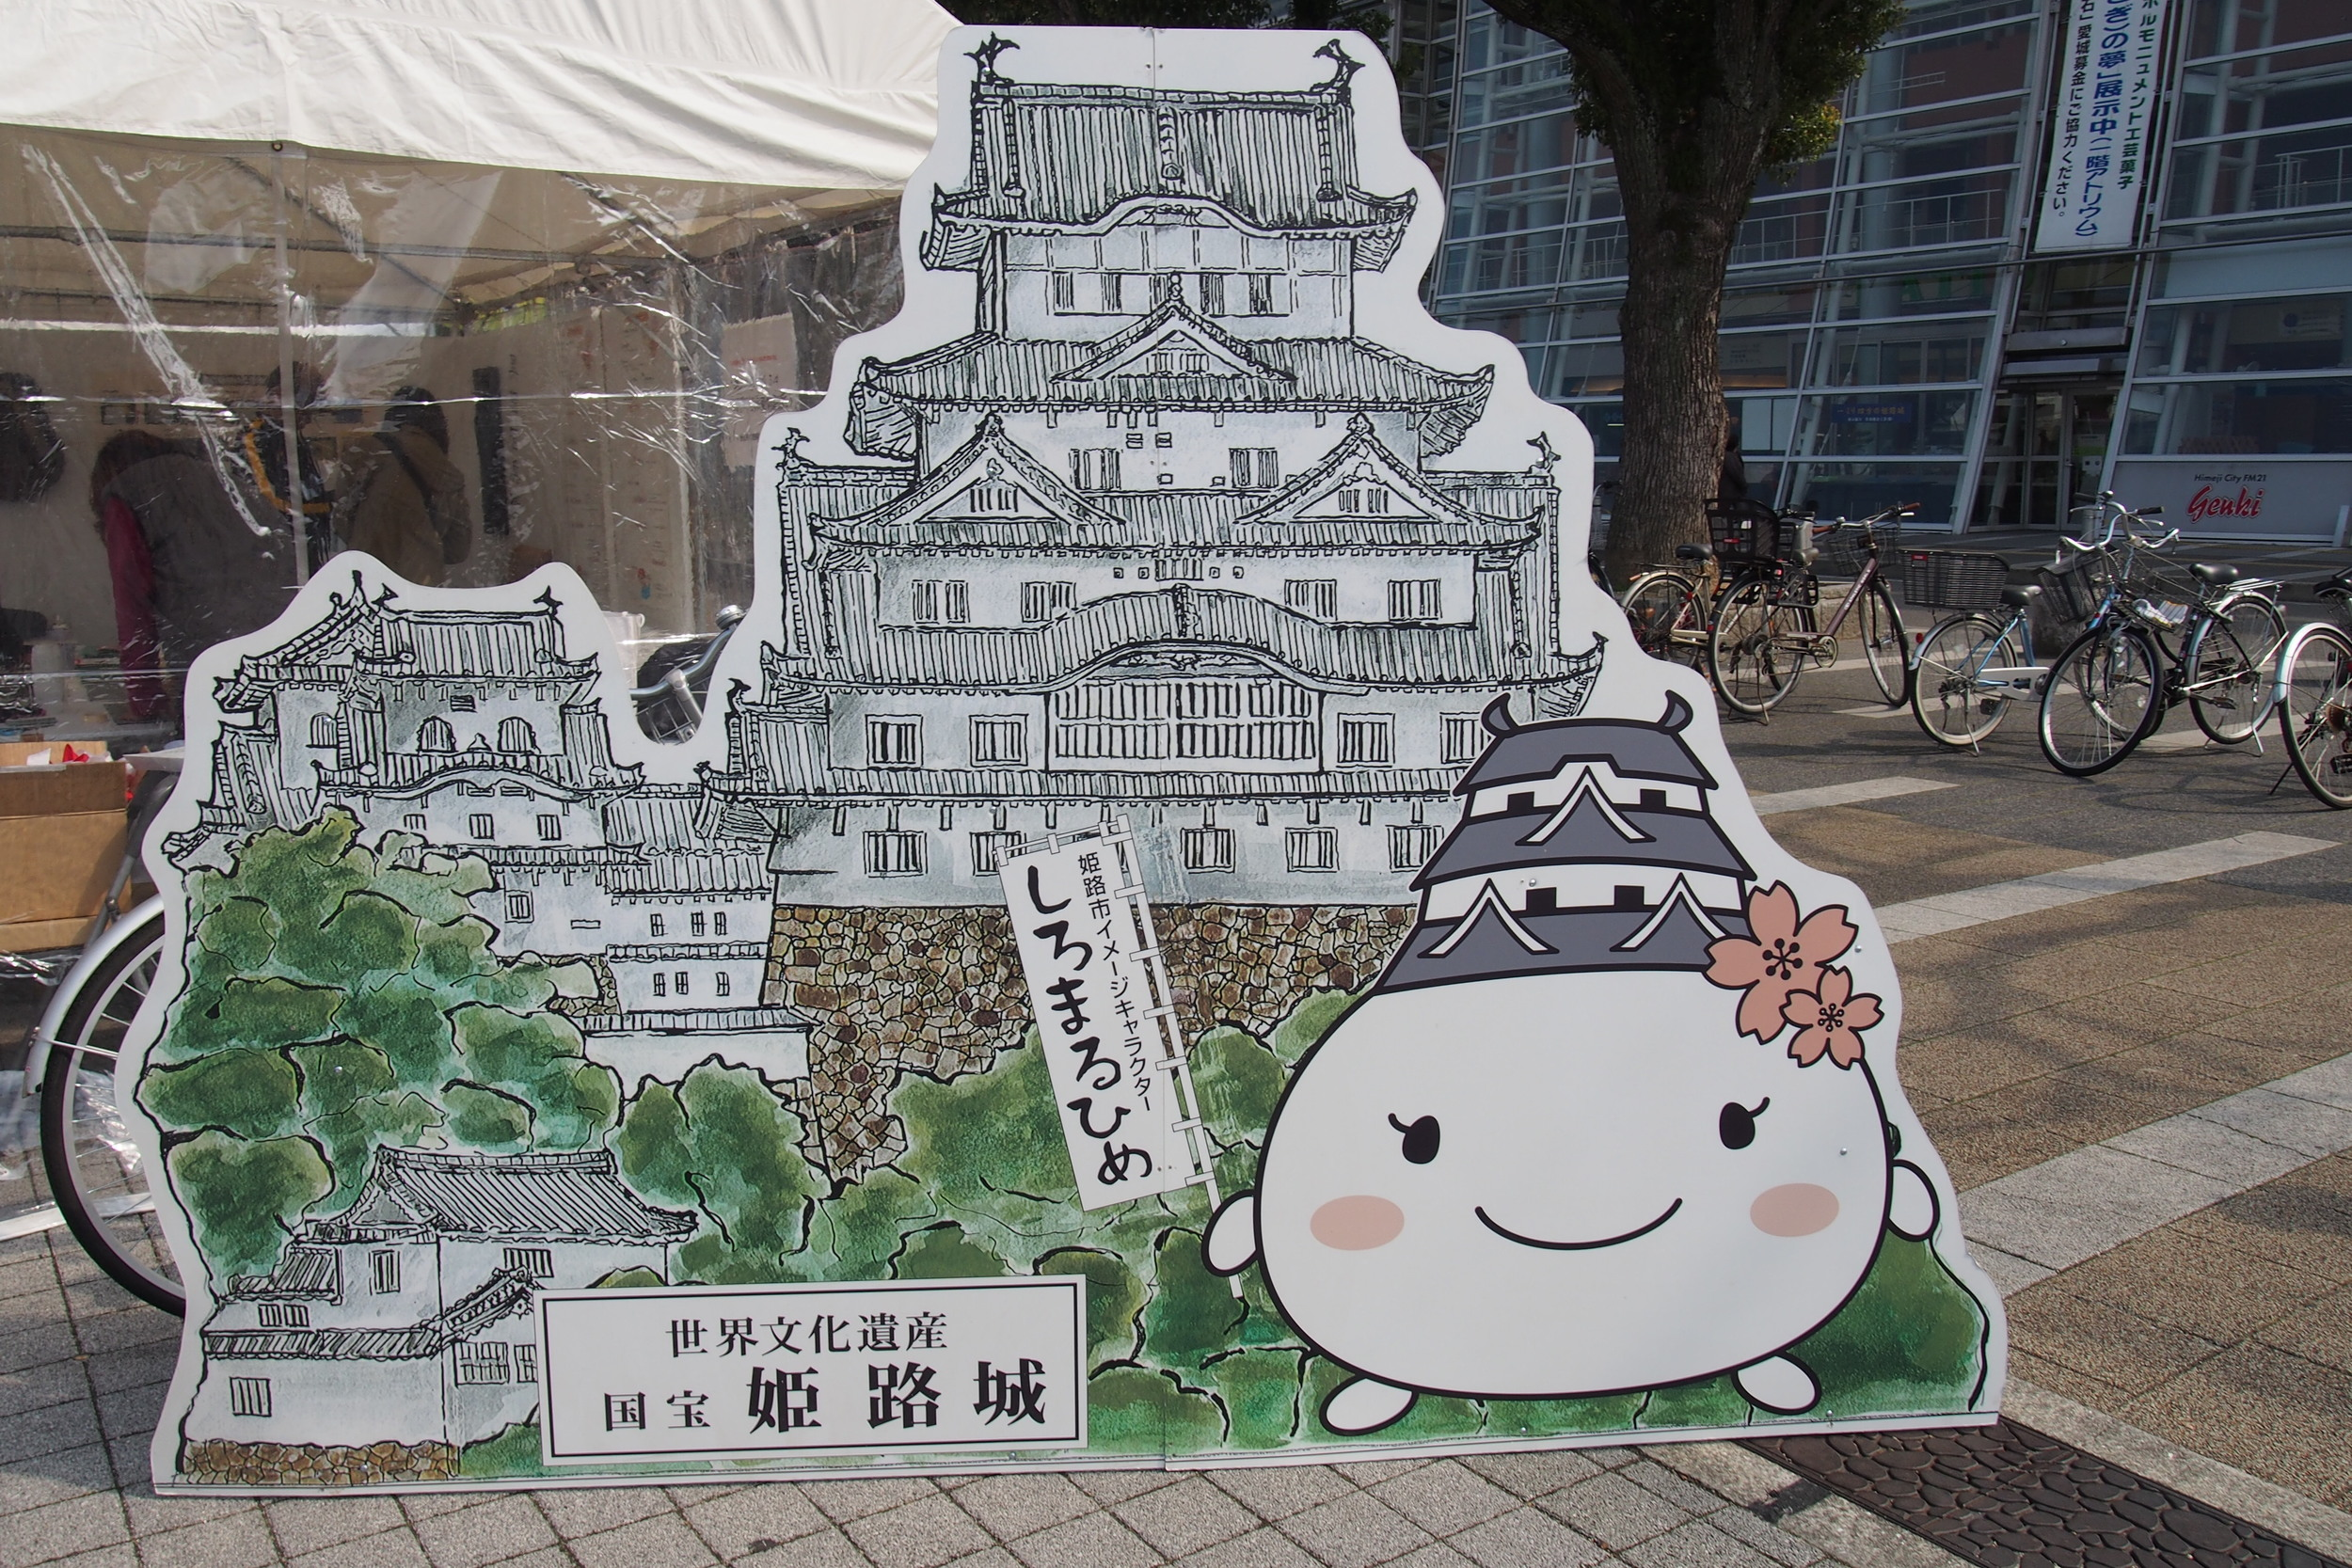 This is Shiromaruhime who is the mascot of Himeji castle. I think the name in itself is a pun - Shiro is castle but shiro also means white and maru is round so white/castleroundprincess?? Lol. I love Japan and their puns.  While we were outside the castle grounds we explored the food fair and bought some ekisoba and manjuu - more on the food in  this post .